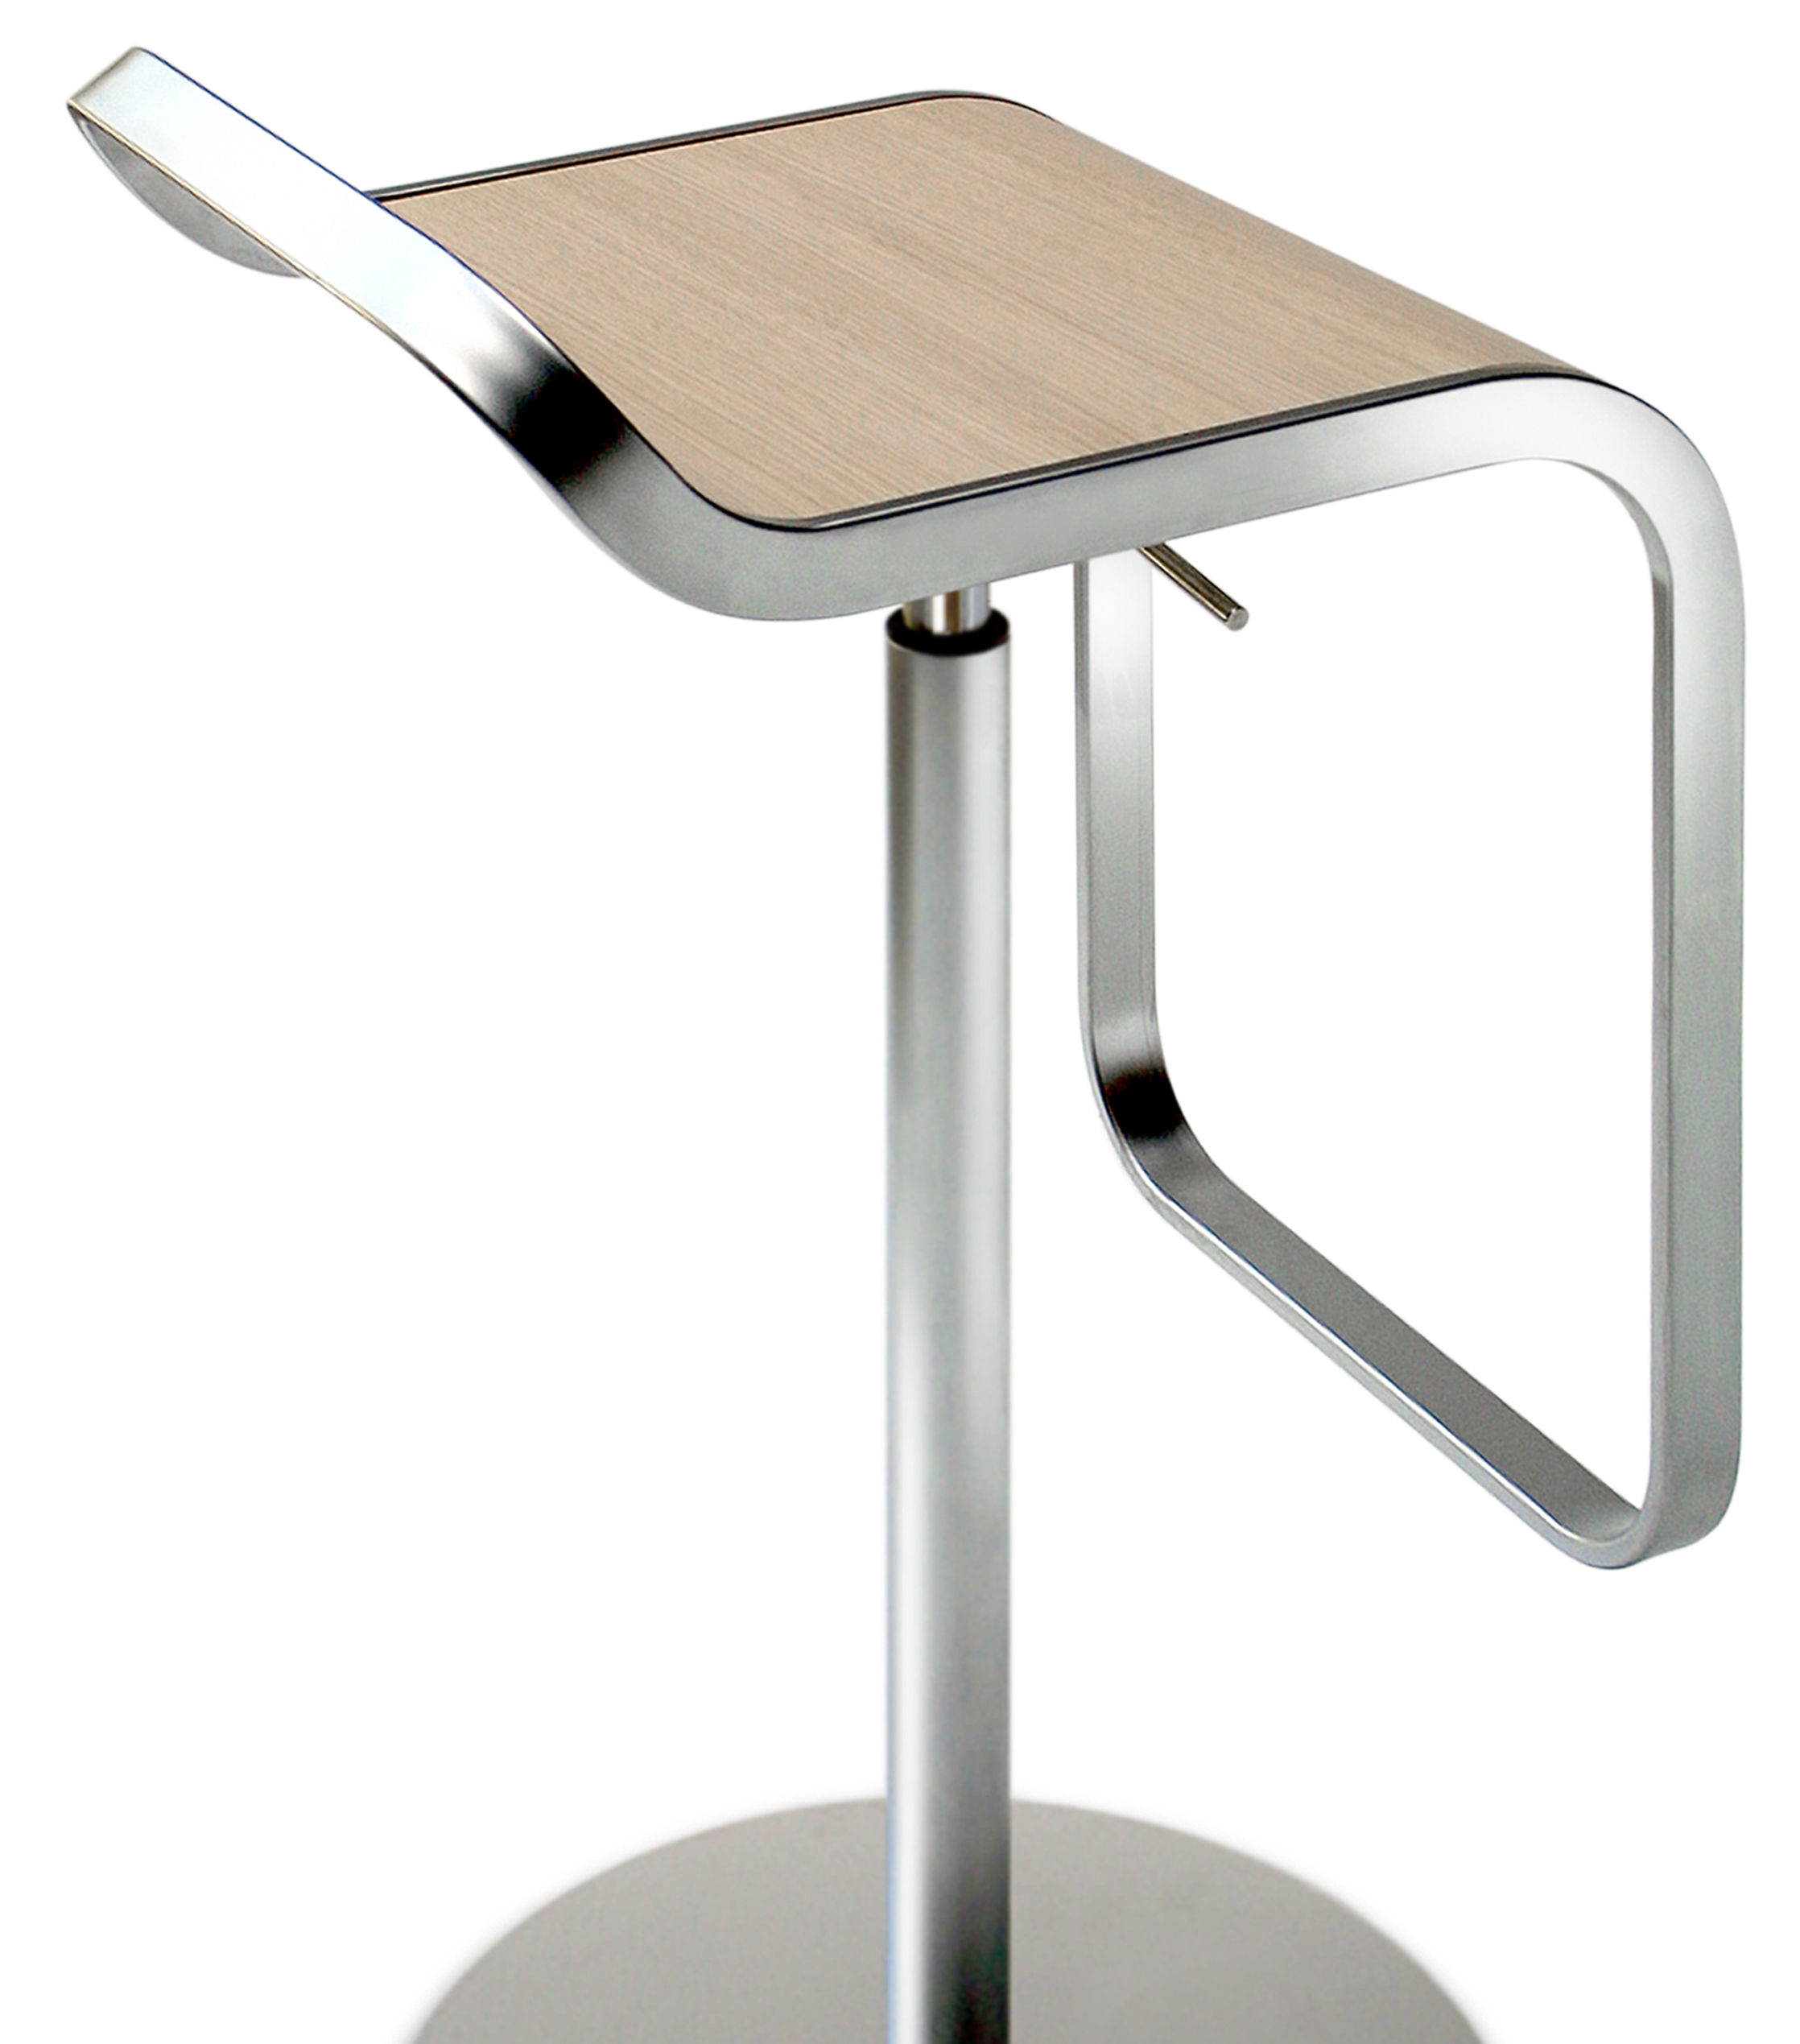 Lem Adjustable bar stool Pivoting wood seat Blanched oak  : 90cc1e2a 1fe3 4378 8164 d52a15bd1118 from www.madeindesign.co.uk size 2236 x 2539 jpeg 251kB